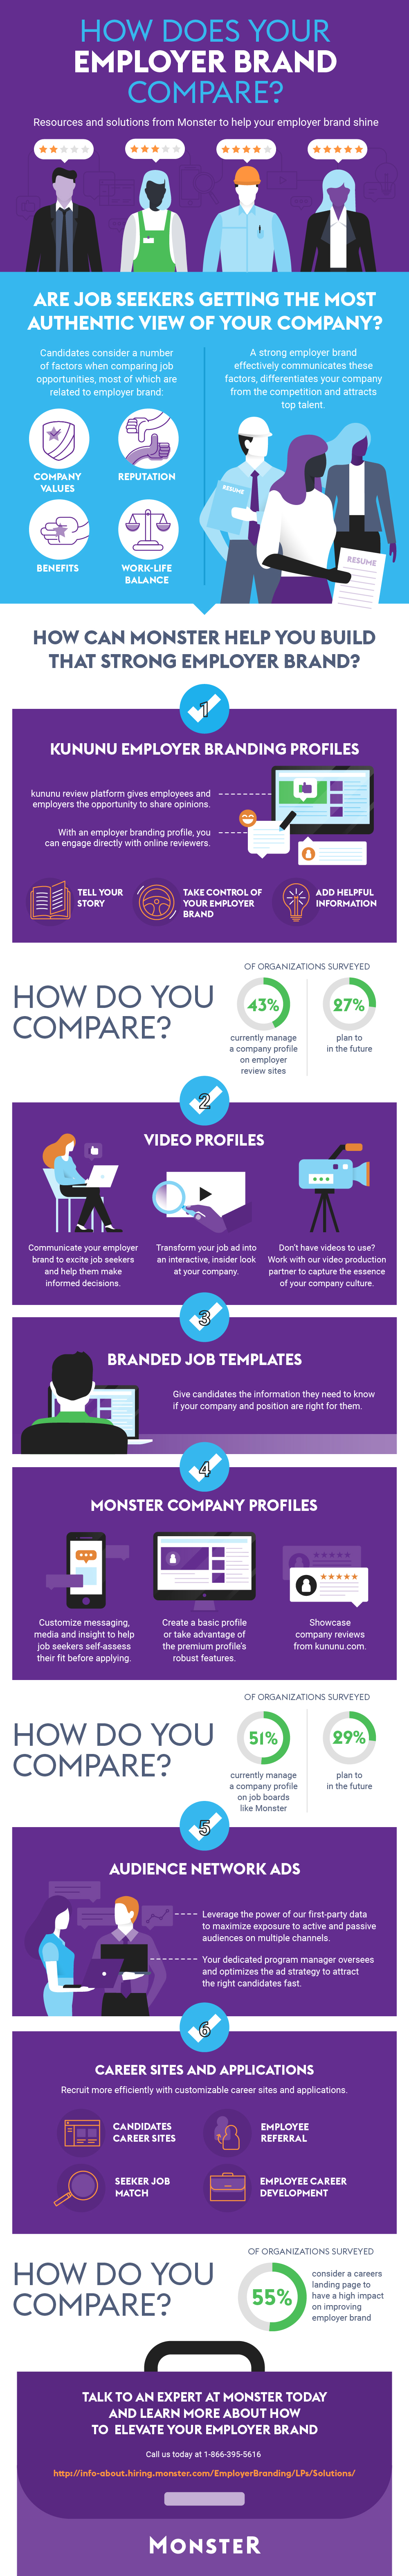 How Does Your Employer Brand Compare?